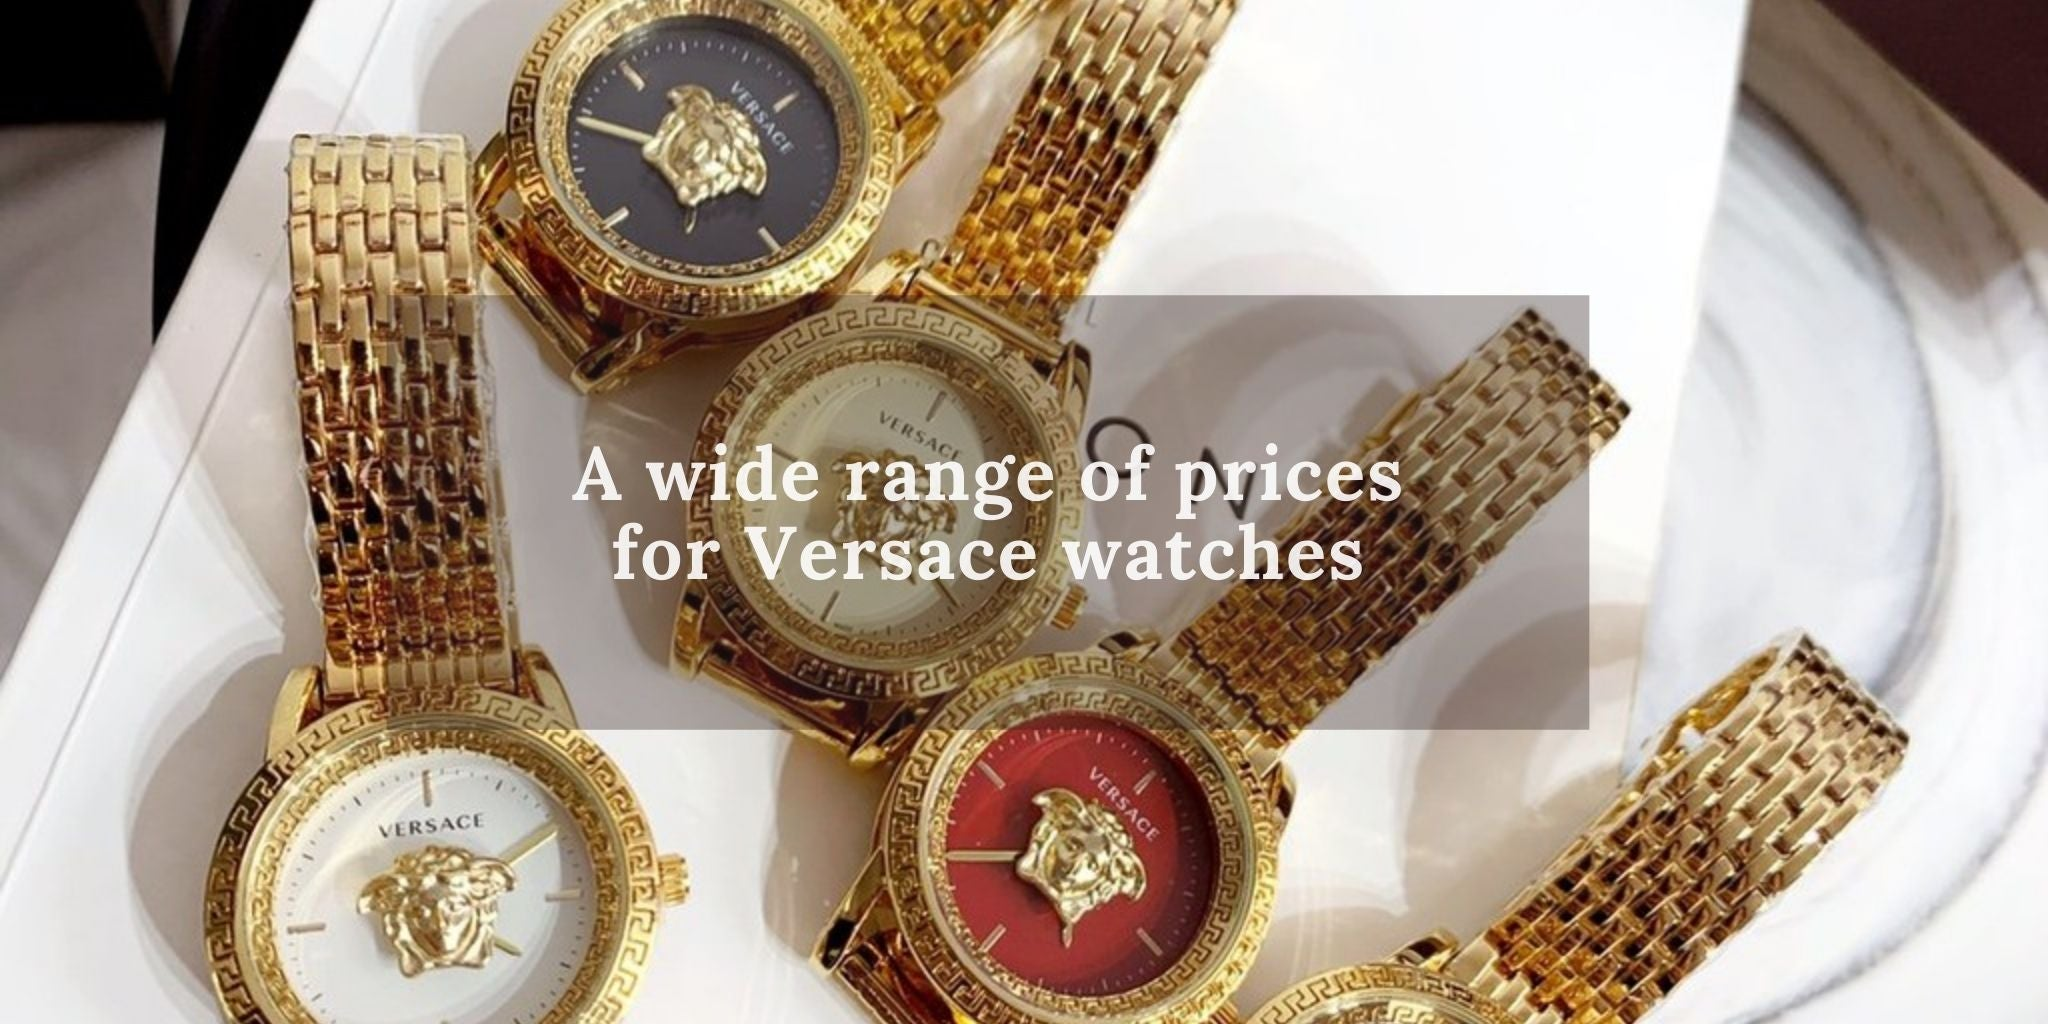 A wide range of prices for Versace watches